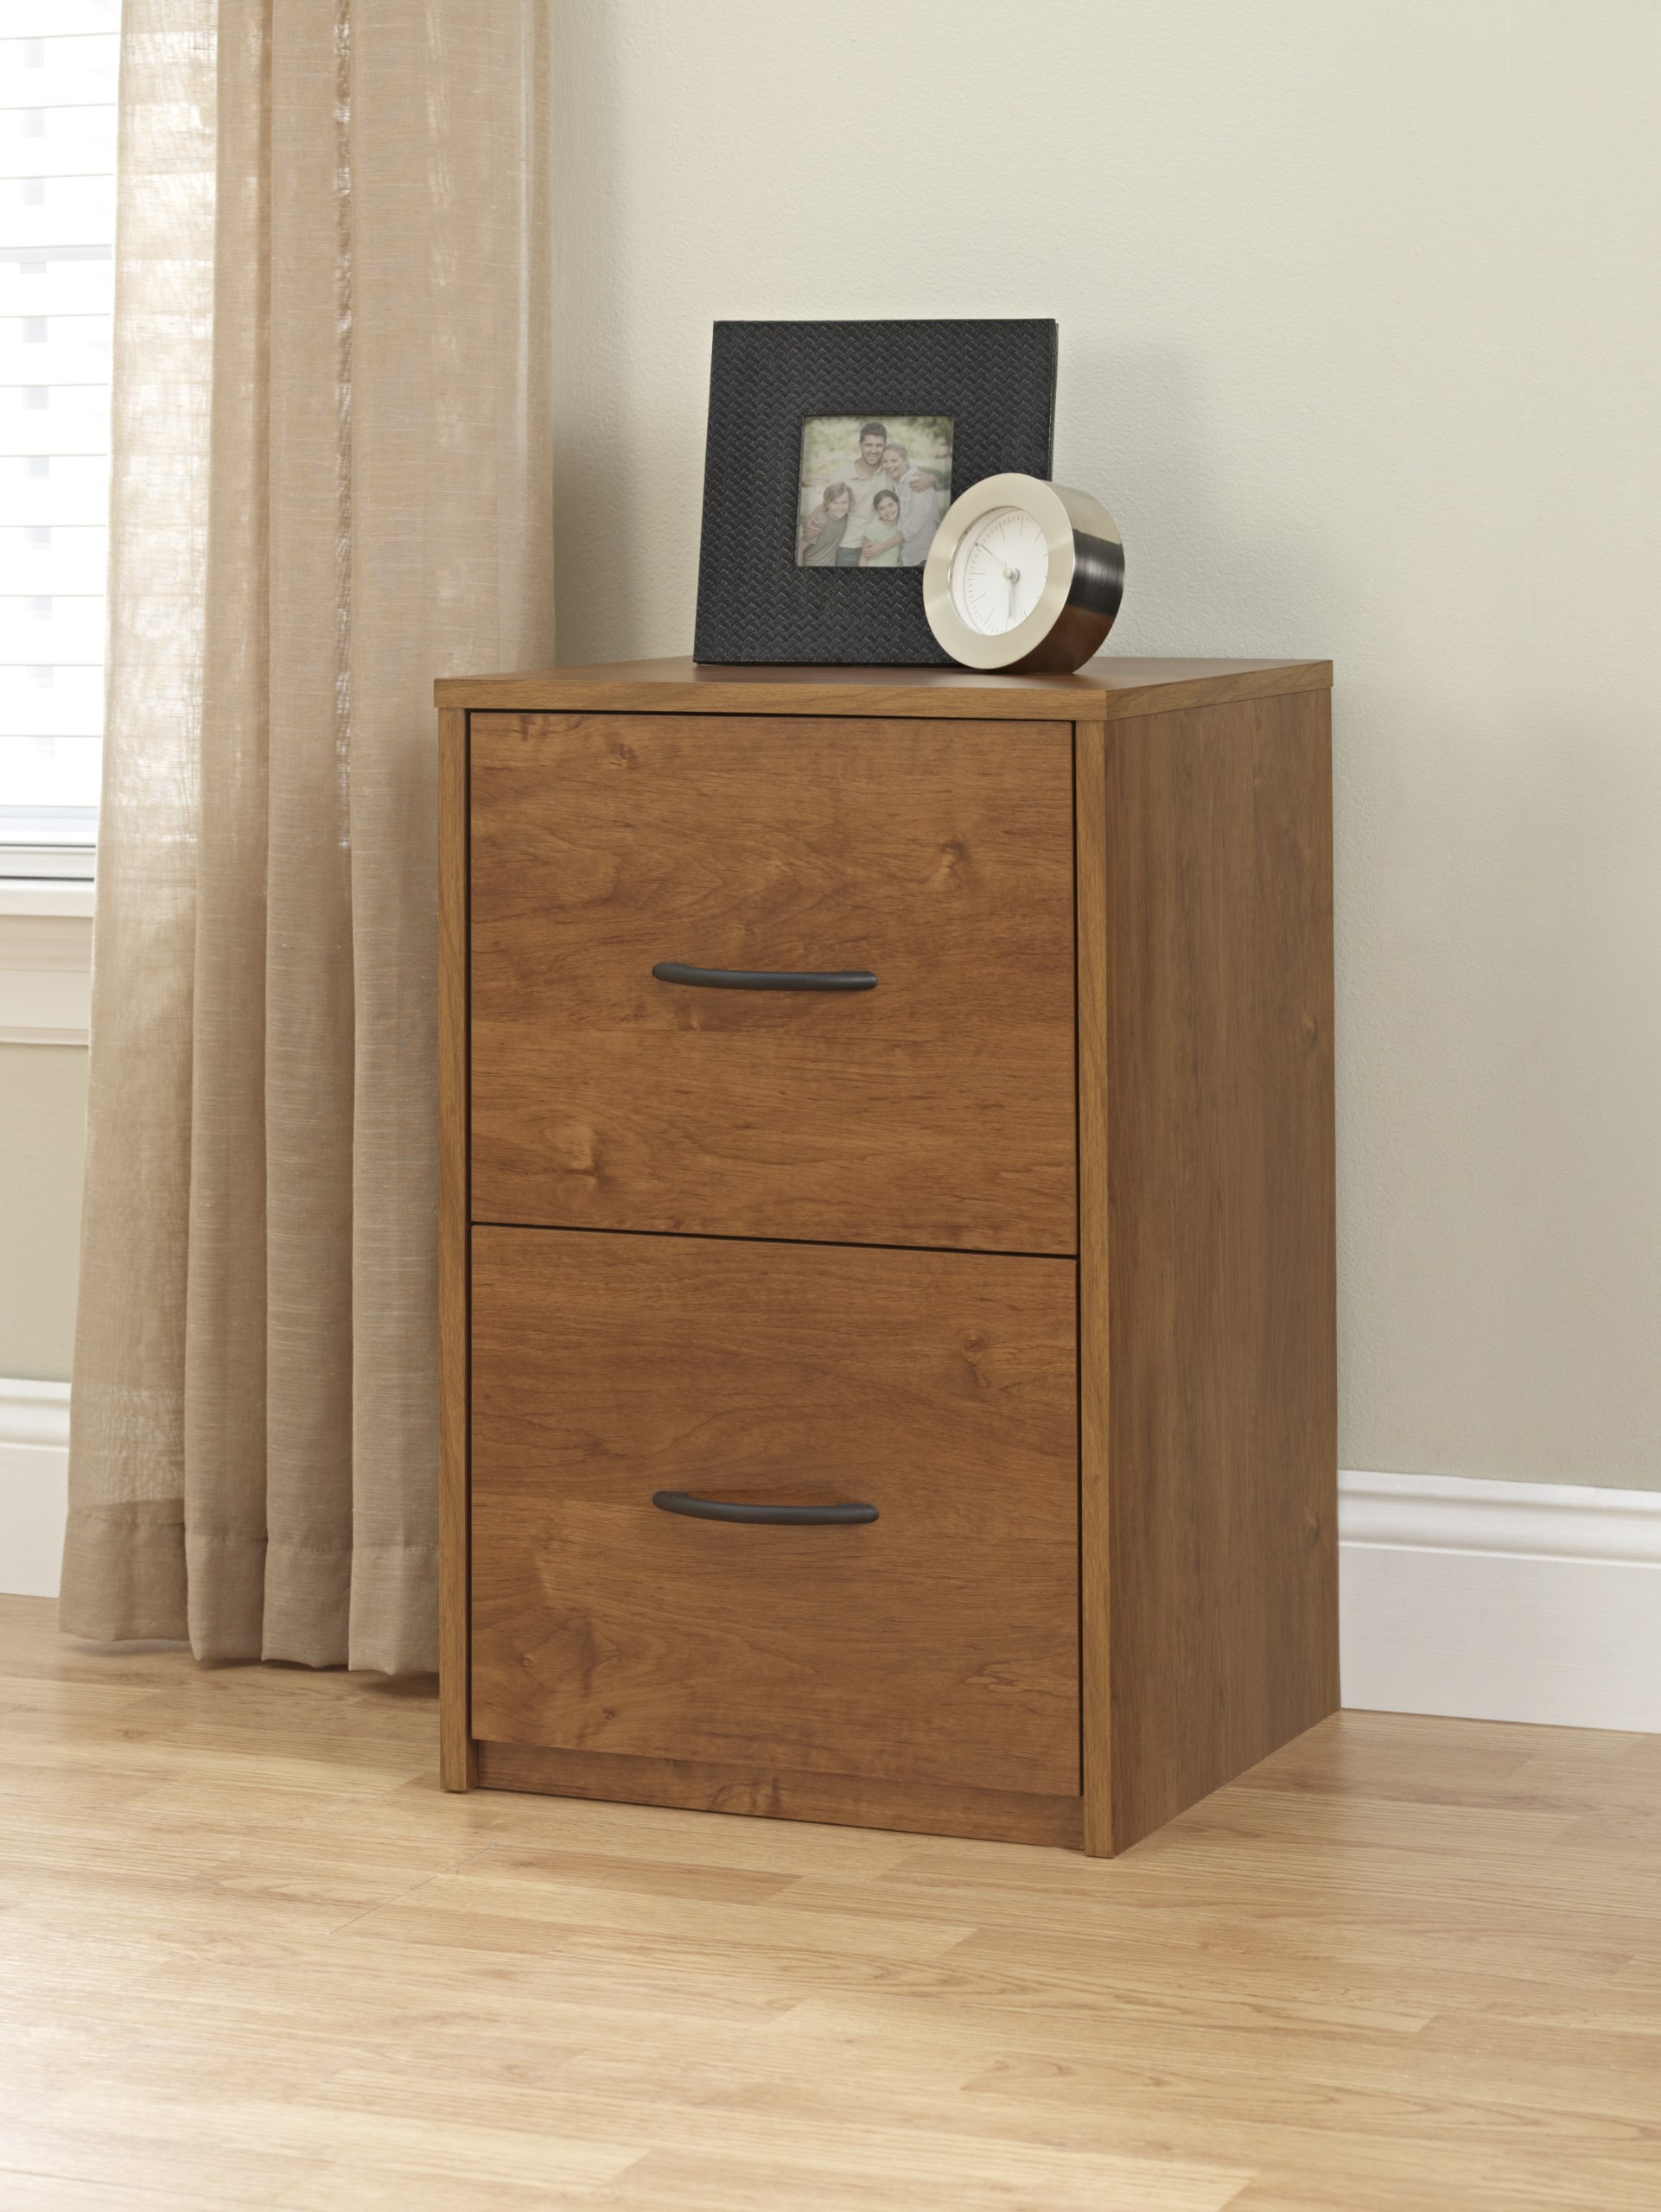 Ameriwood Home Core 2 Drawer File Cabinet, Bank Adler by Ameriwood Home